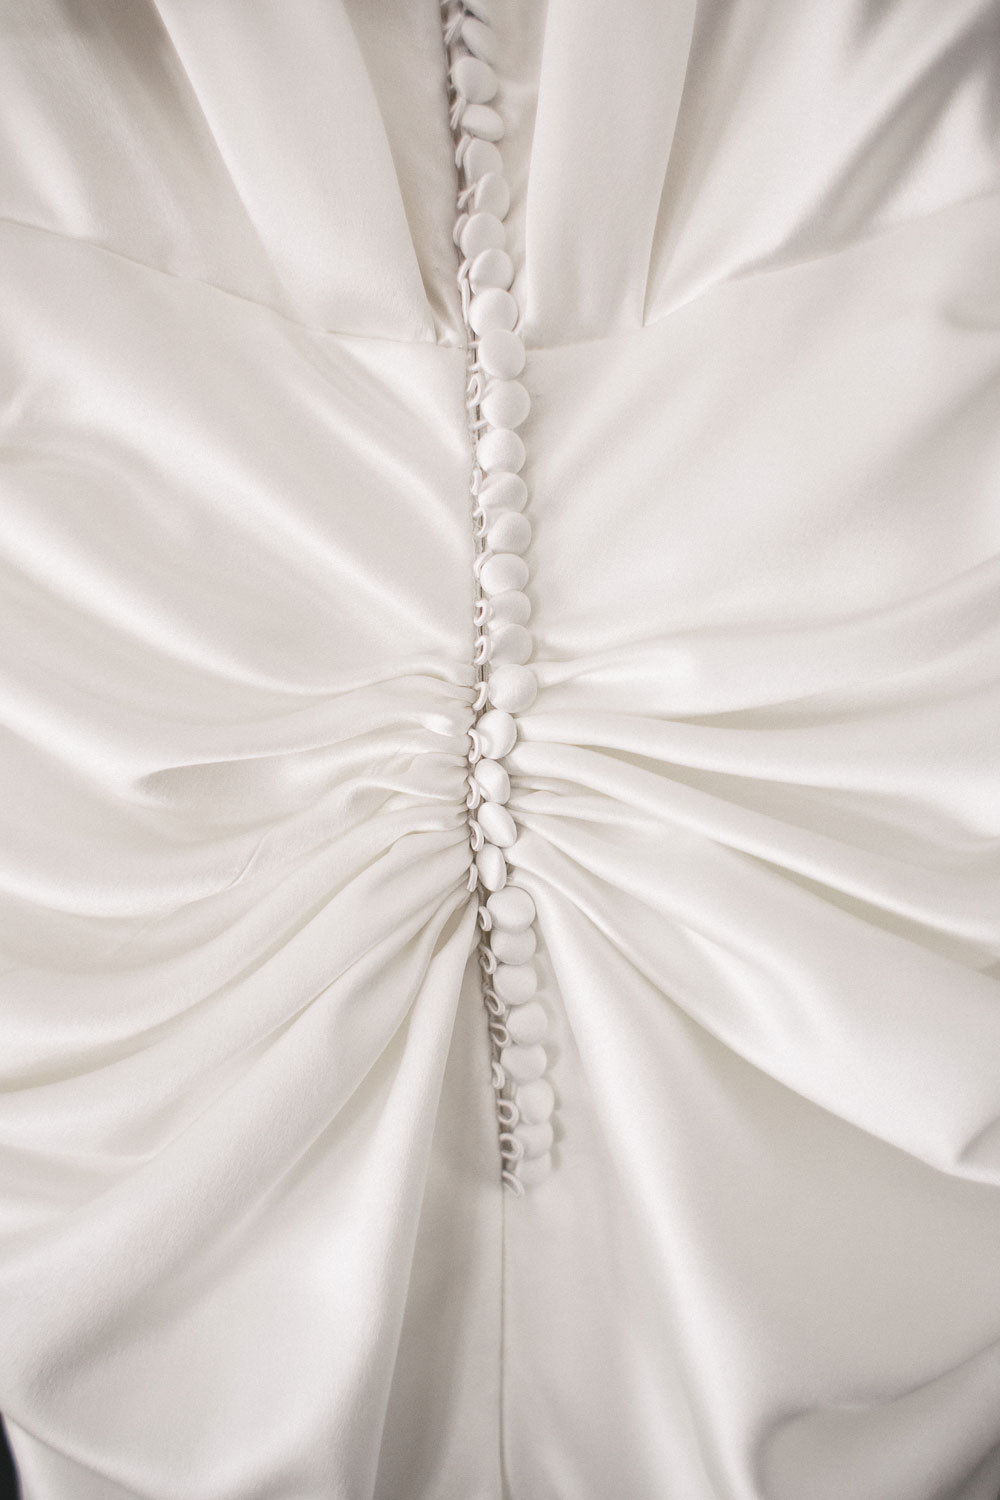 the-deck-prince-st-kilda-wedding-dress-detail